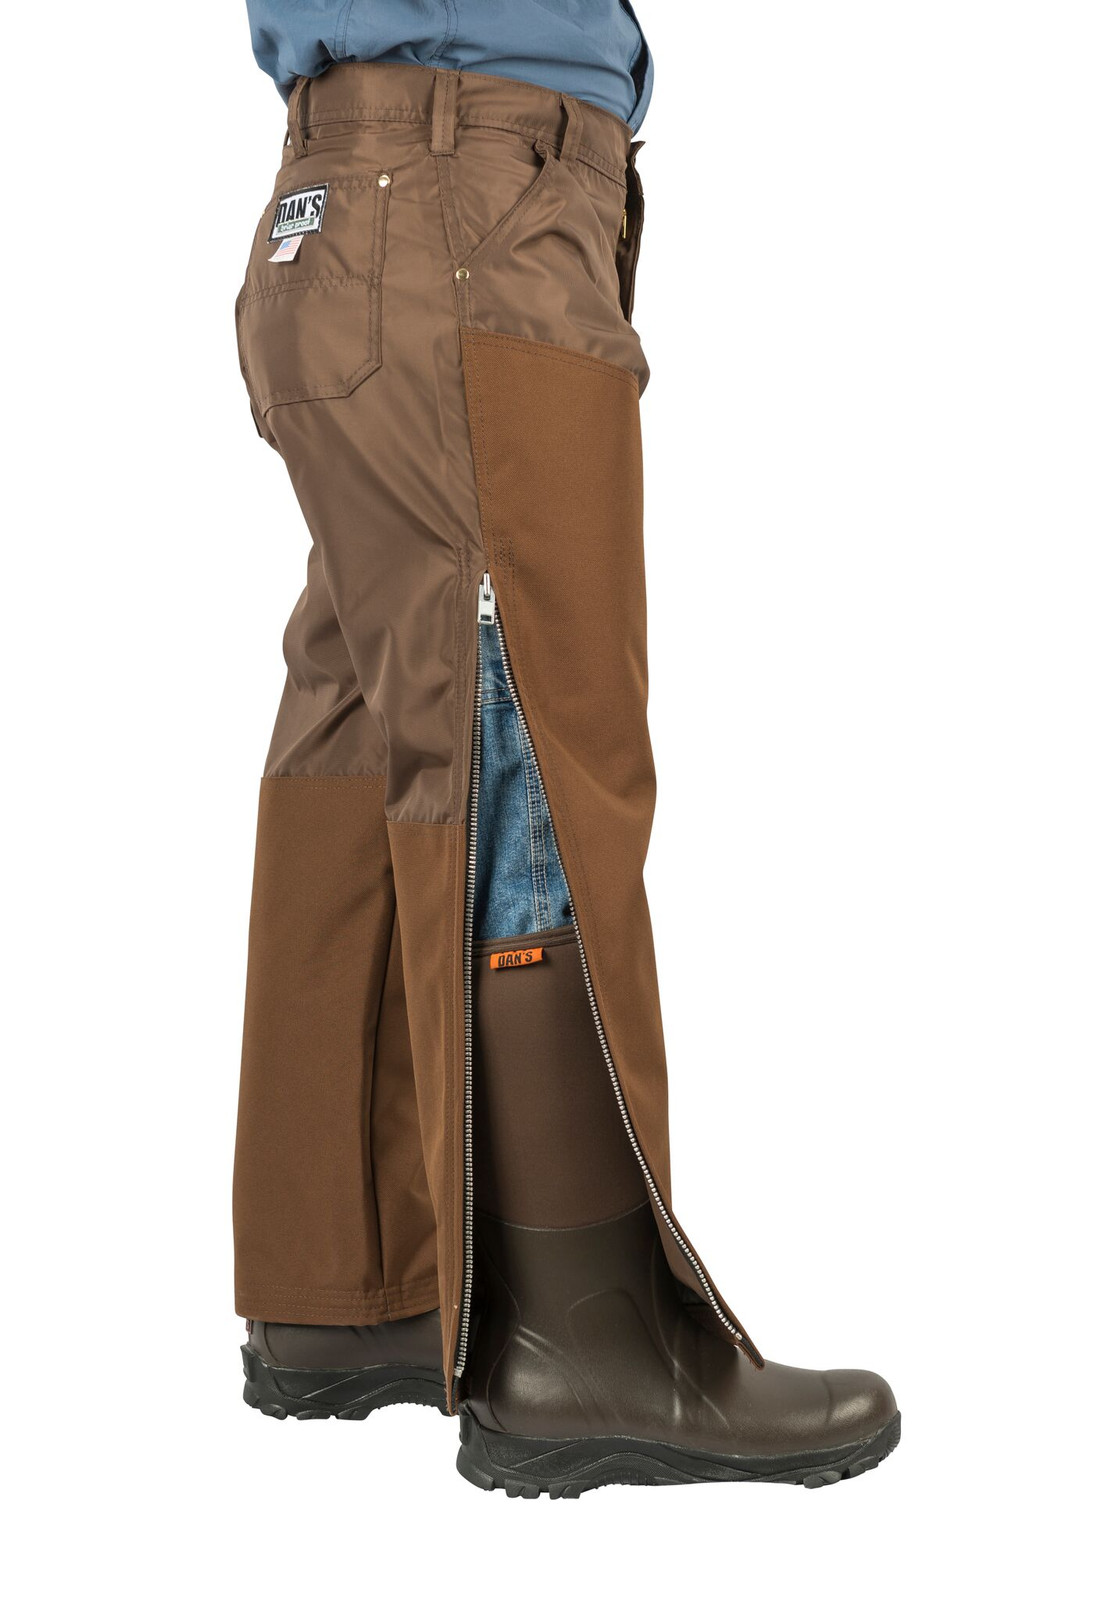 Brush Buster Pants by Dan's Hunting Gear®